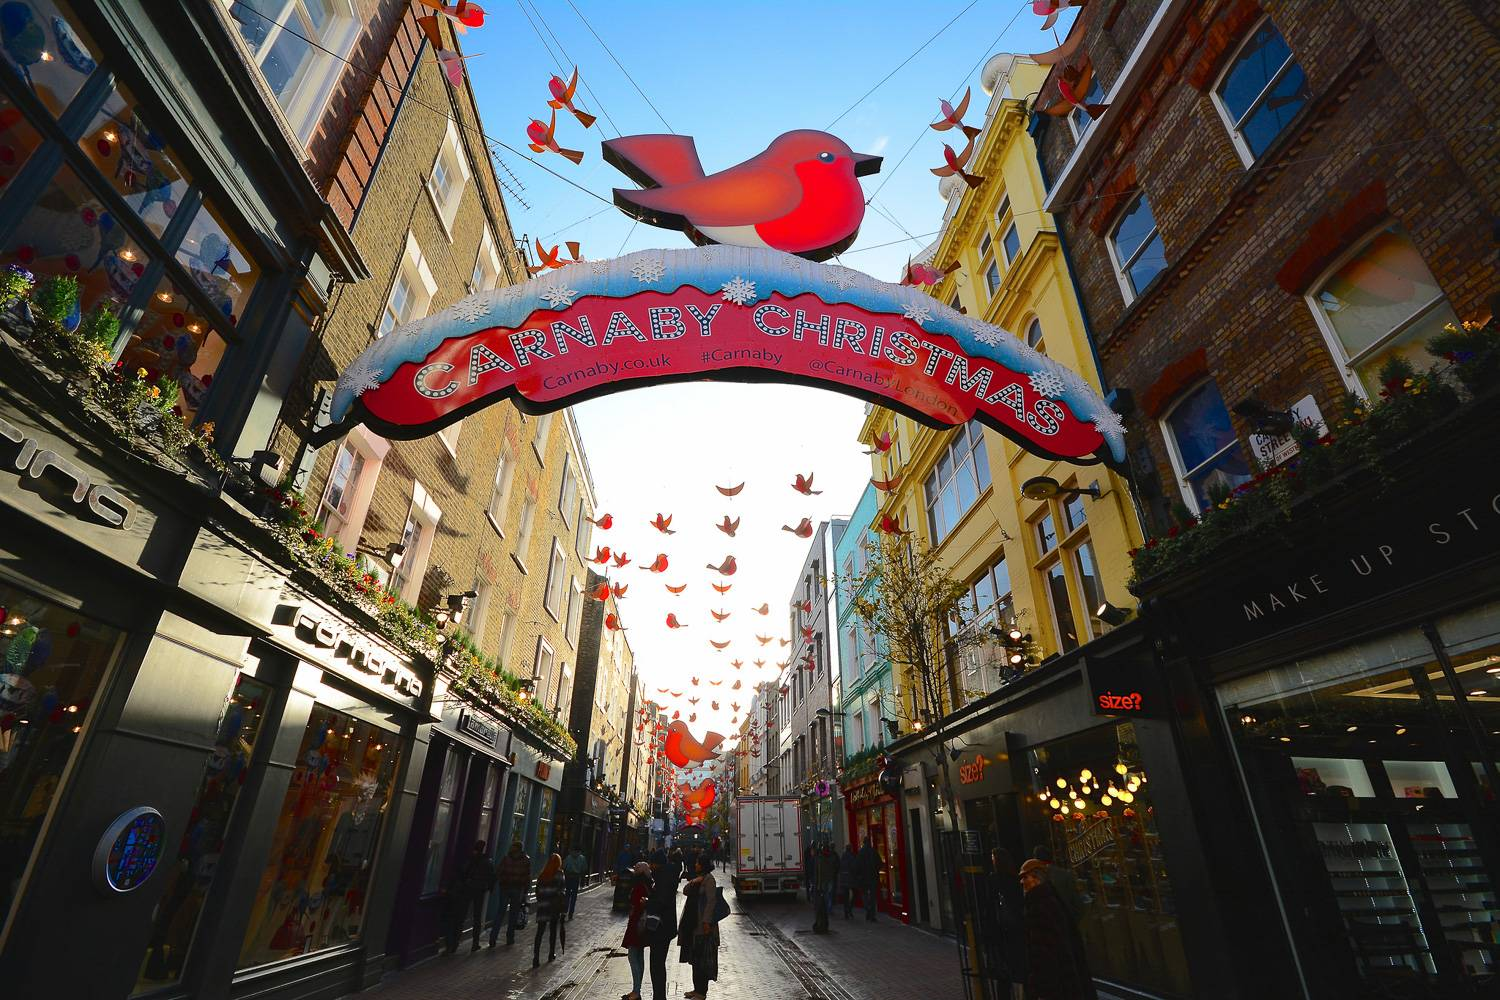 Image of Carnaby Street in London decorated for Christmas.